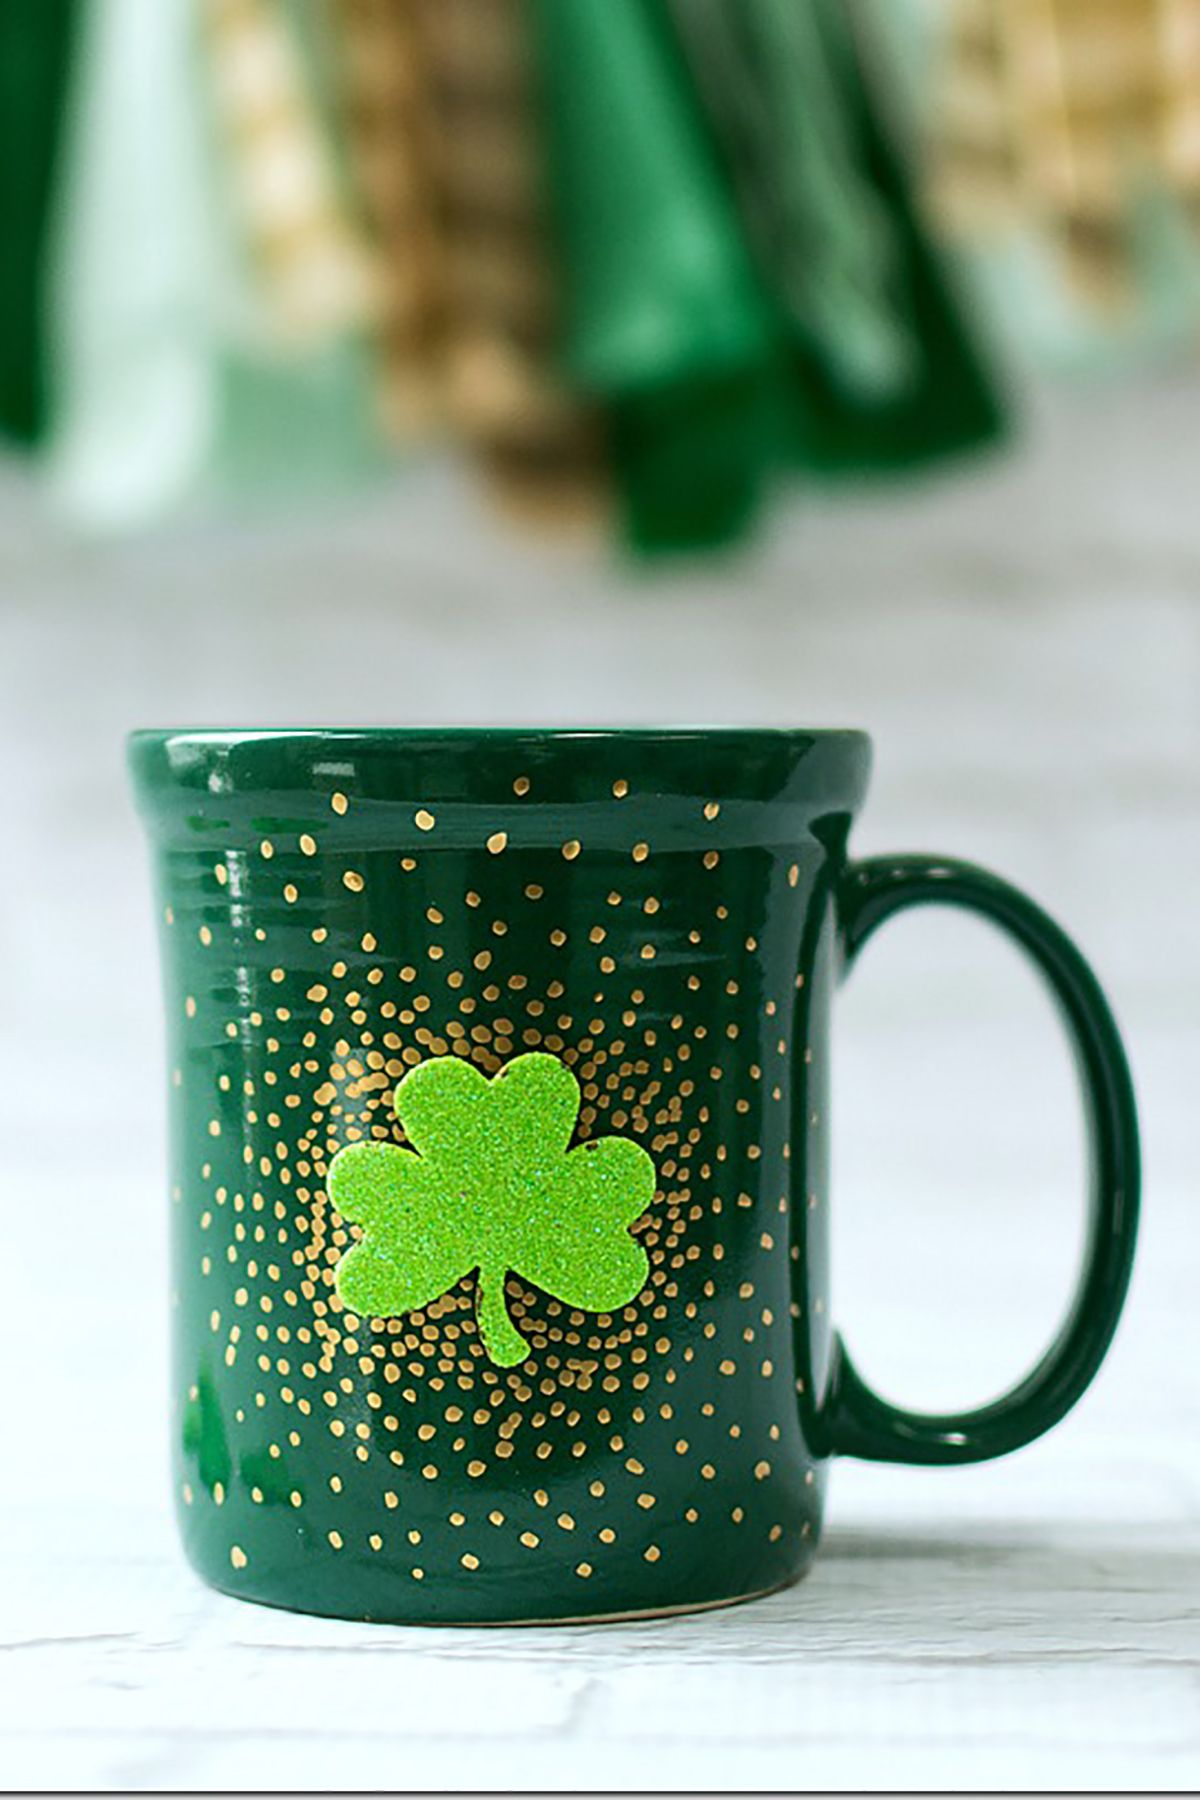 9ee37e16d 24 Easy St. Patrick's Day Crafts for Adults and Kids - Fun St. Patrick's  Day DIY Ideas